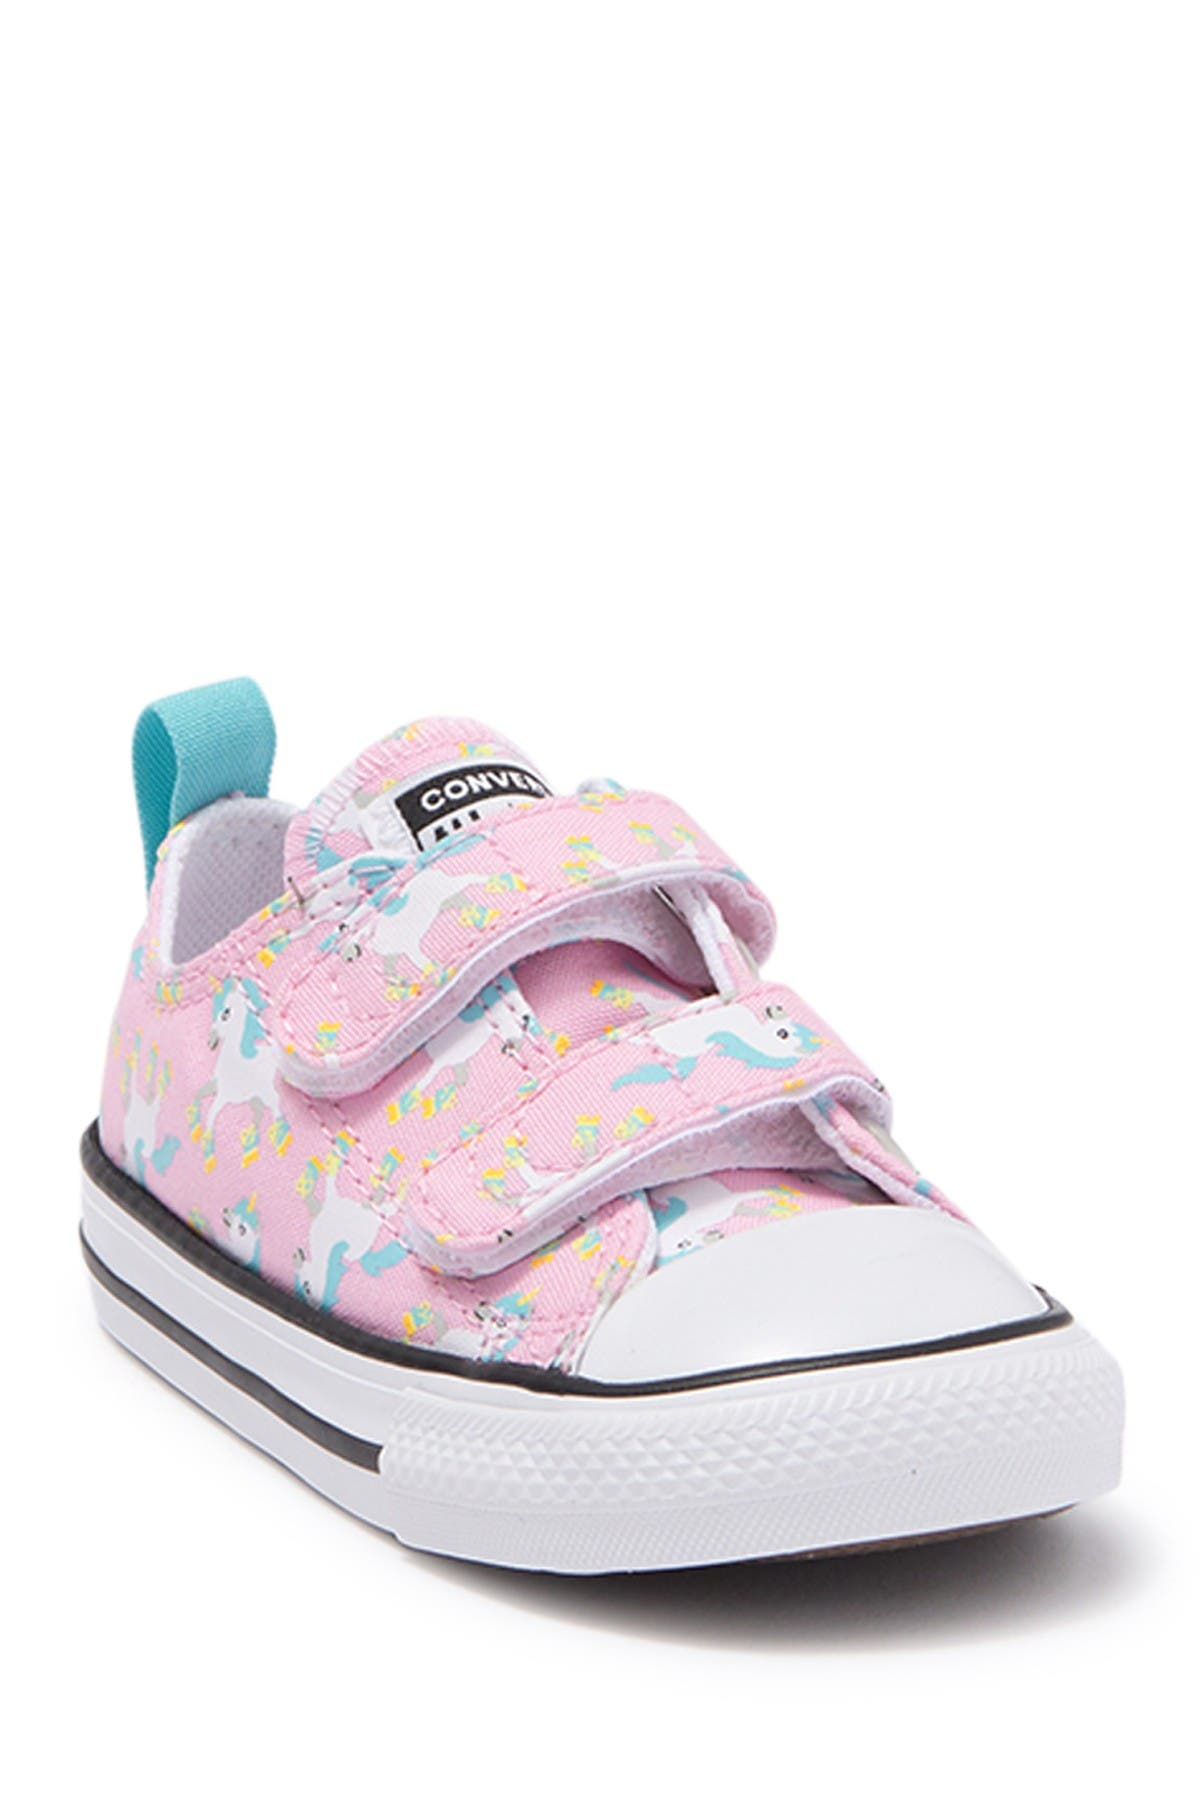 Brash 175079 Sneakers Big Kid Junior Girls Shoes Sz:2 New With Box Without Lid